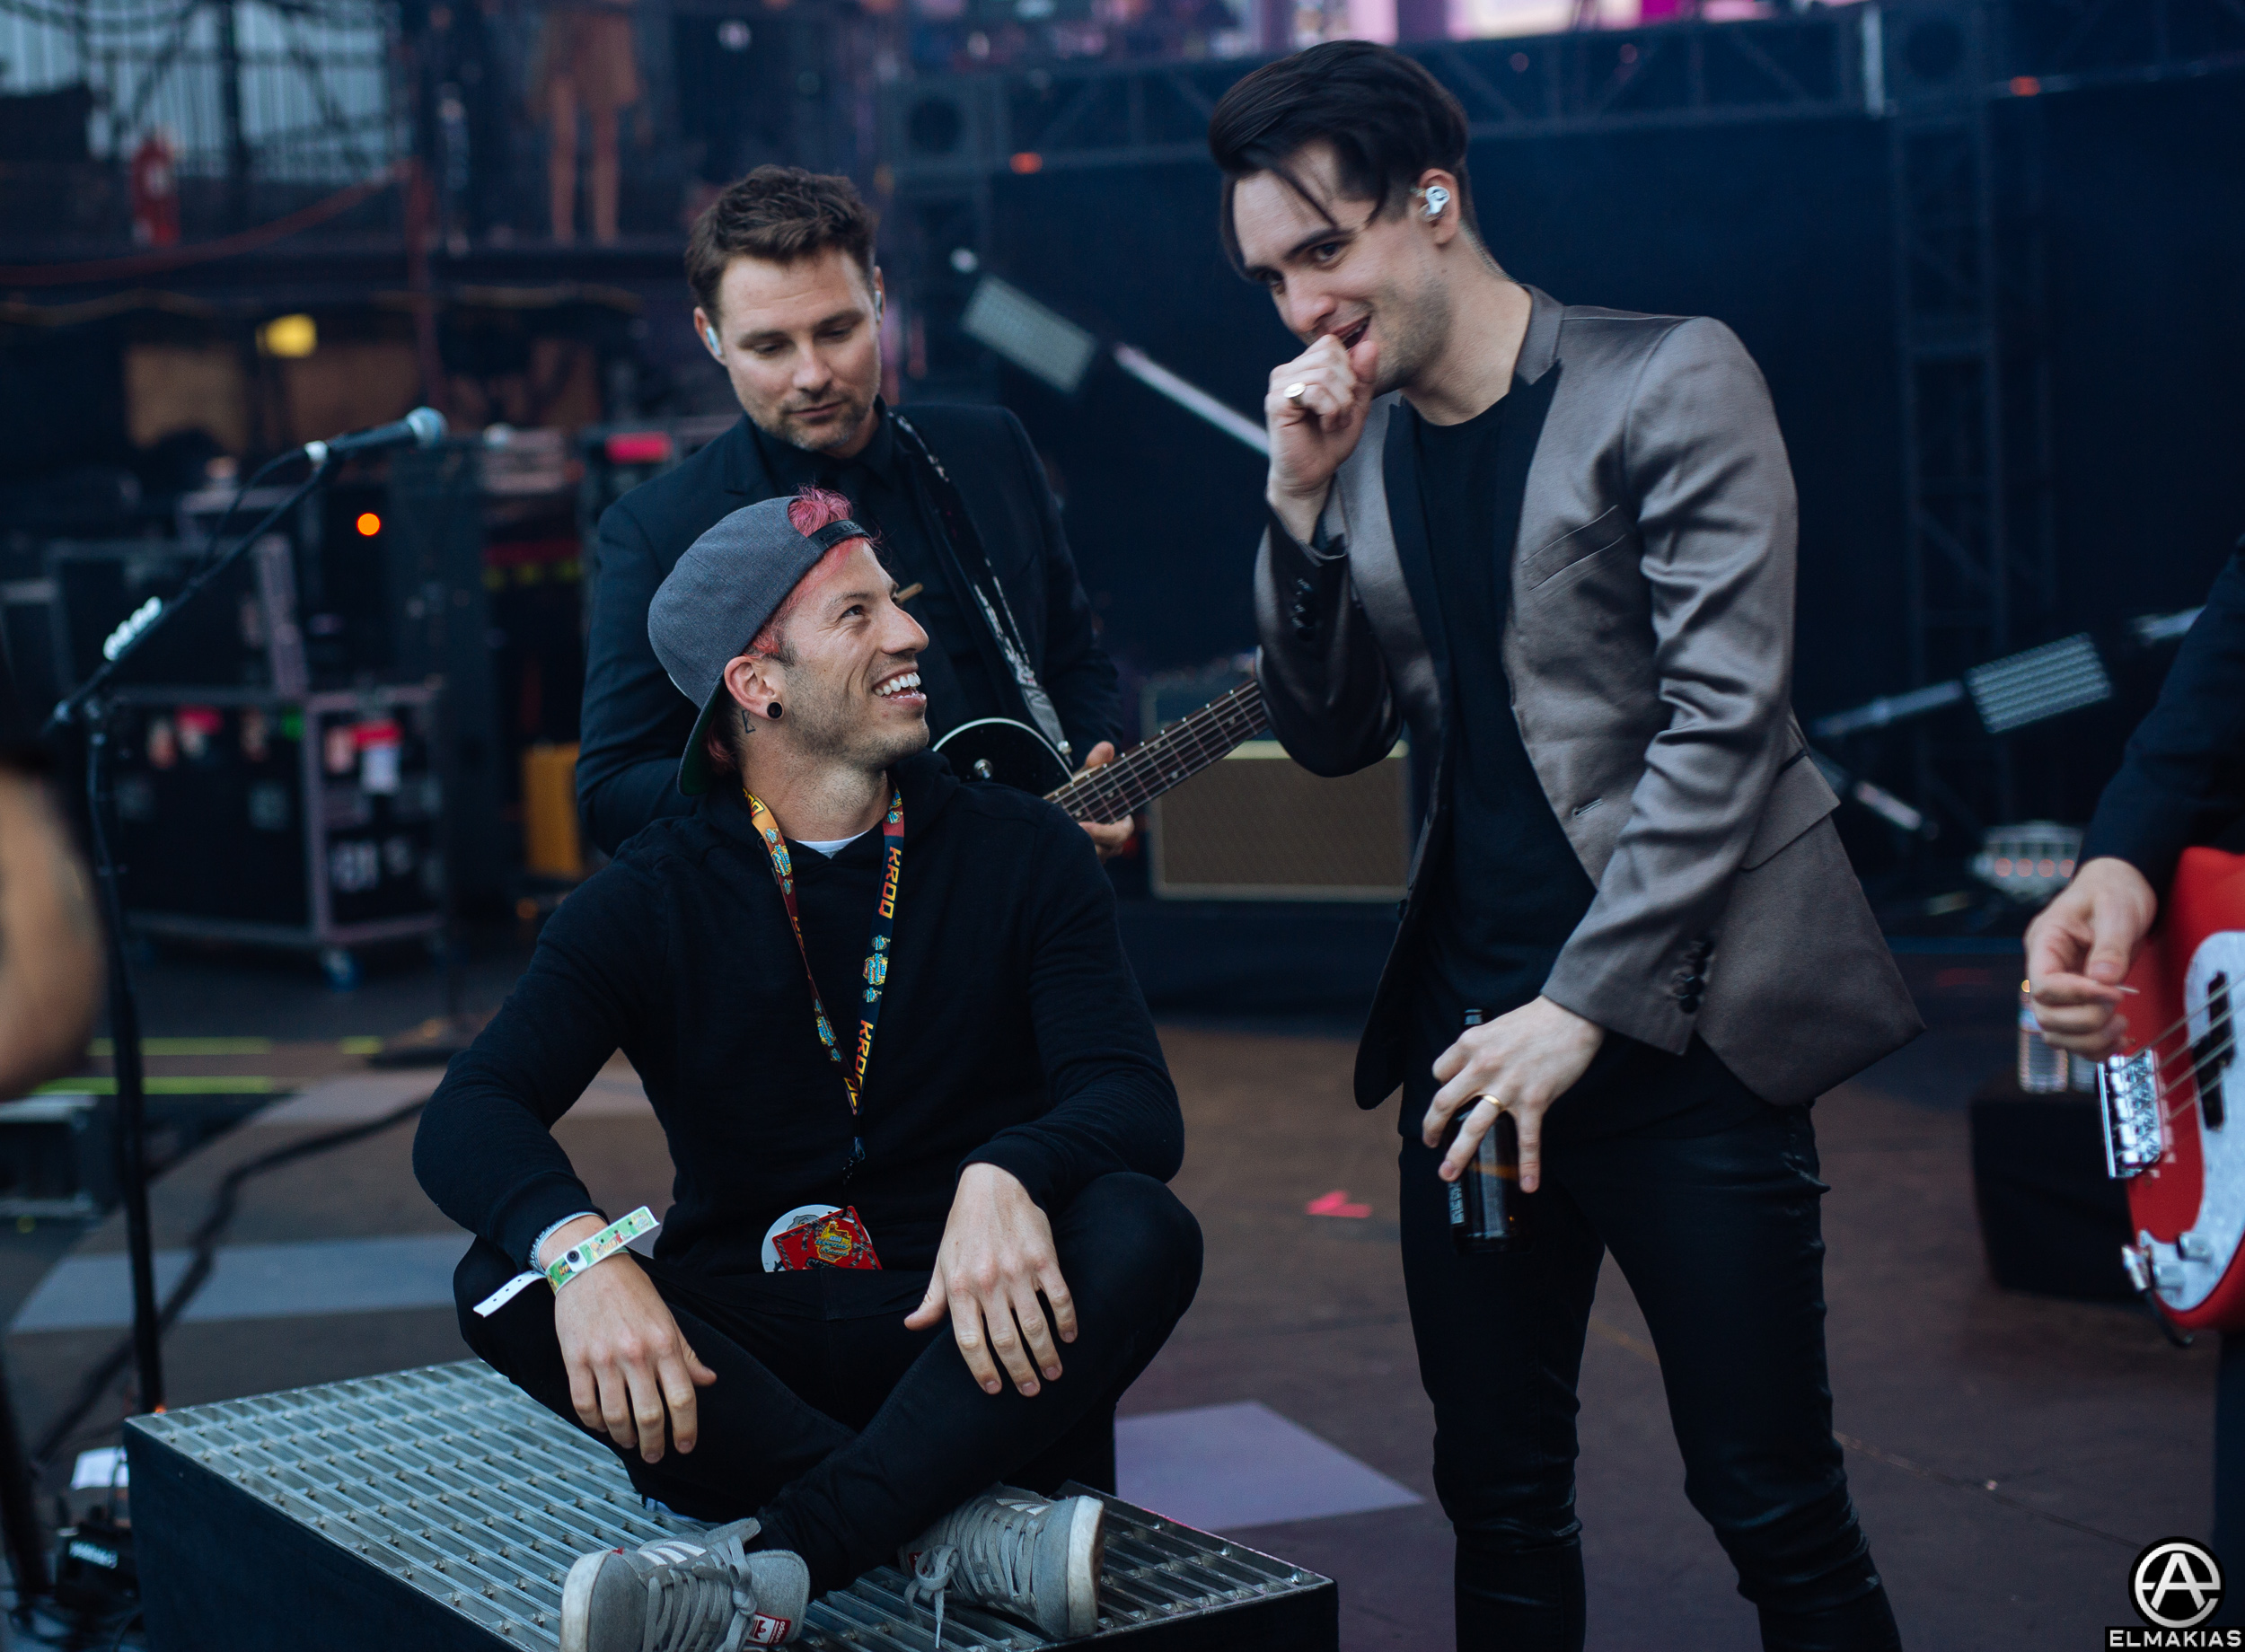 Brendon Urie and Joshua Dun i dont know what they are speaking about